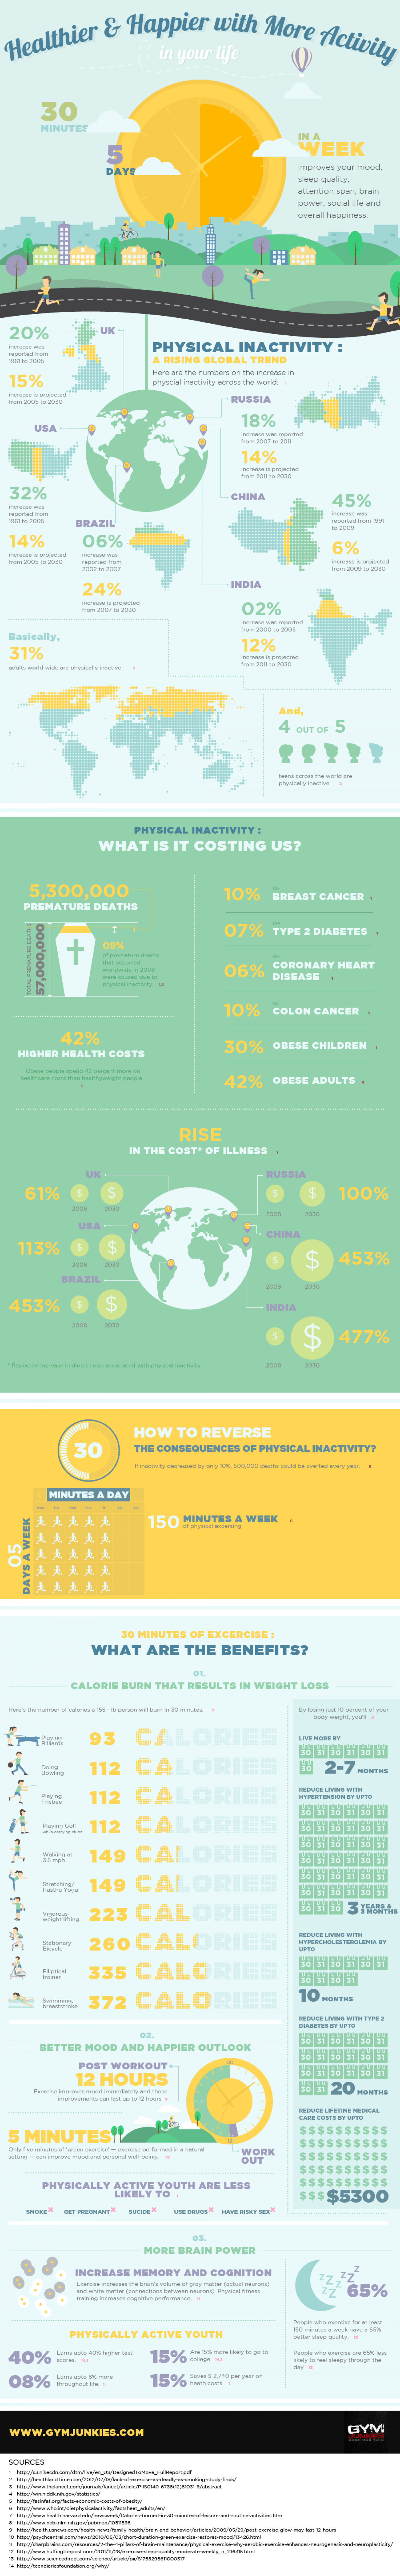 Be Healthier & Happier With More Activity In Your Life  Infographic